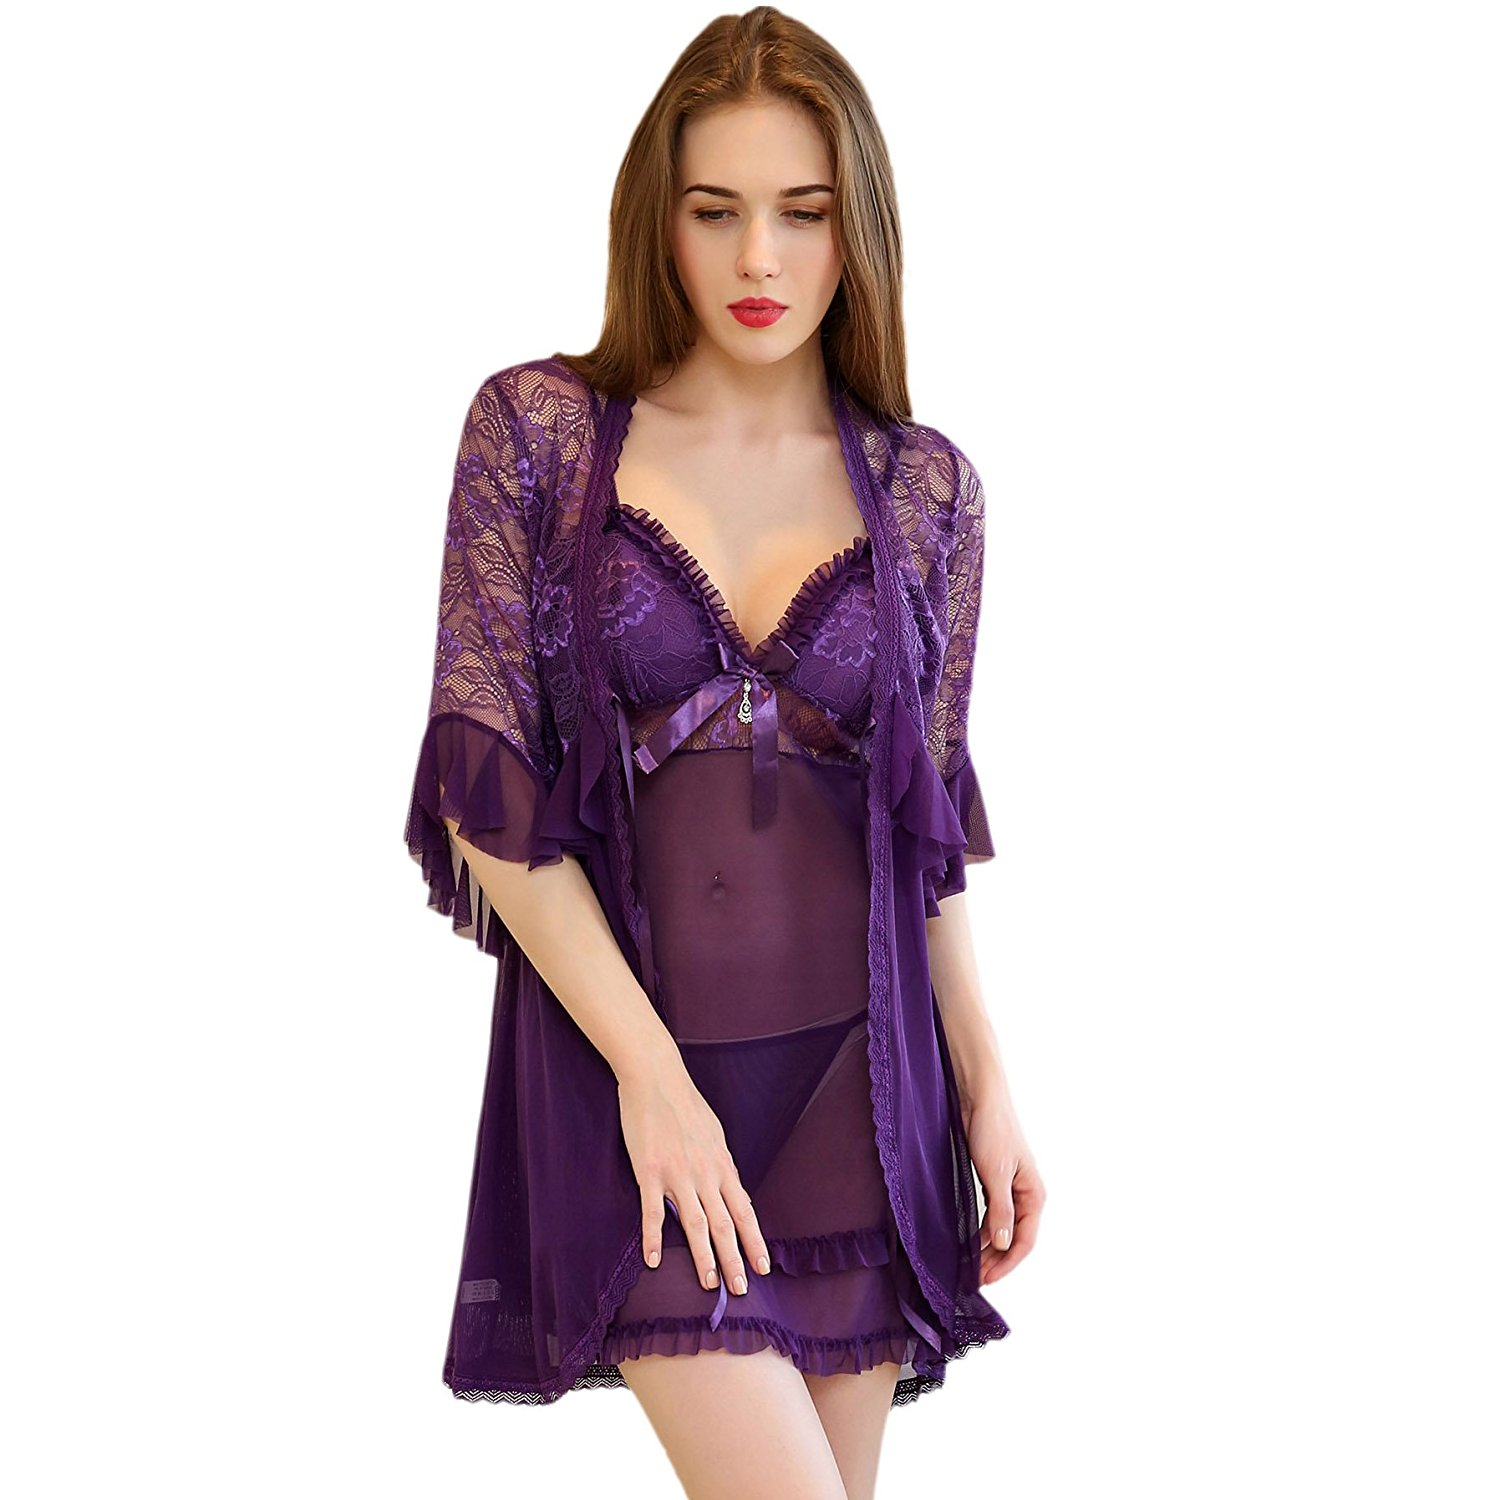 6b6ae855400 Get Quotations · Hstyle Women Bridal Lingerie Robe Lace Nightwear Babydoll  Sets